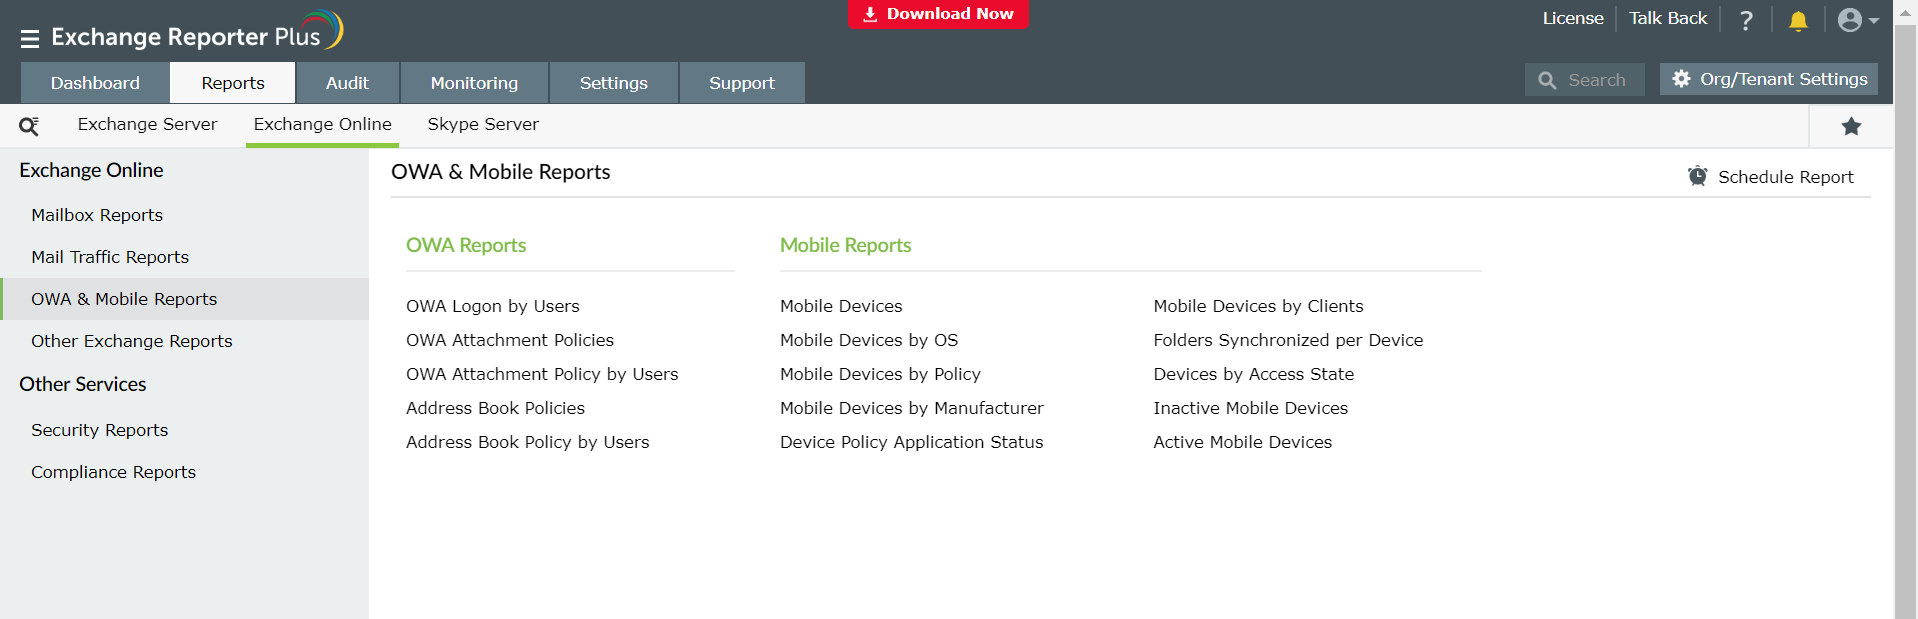 owa-and-mobile-reports-office-365